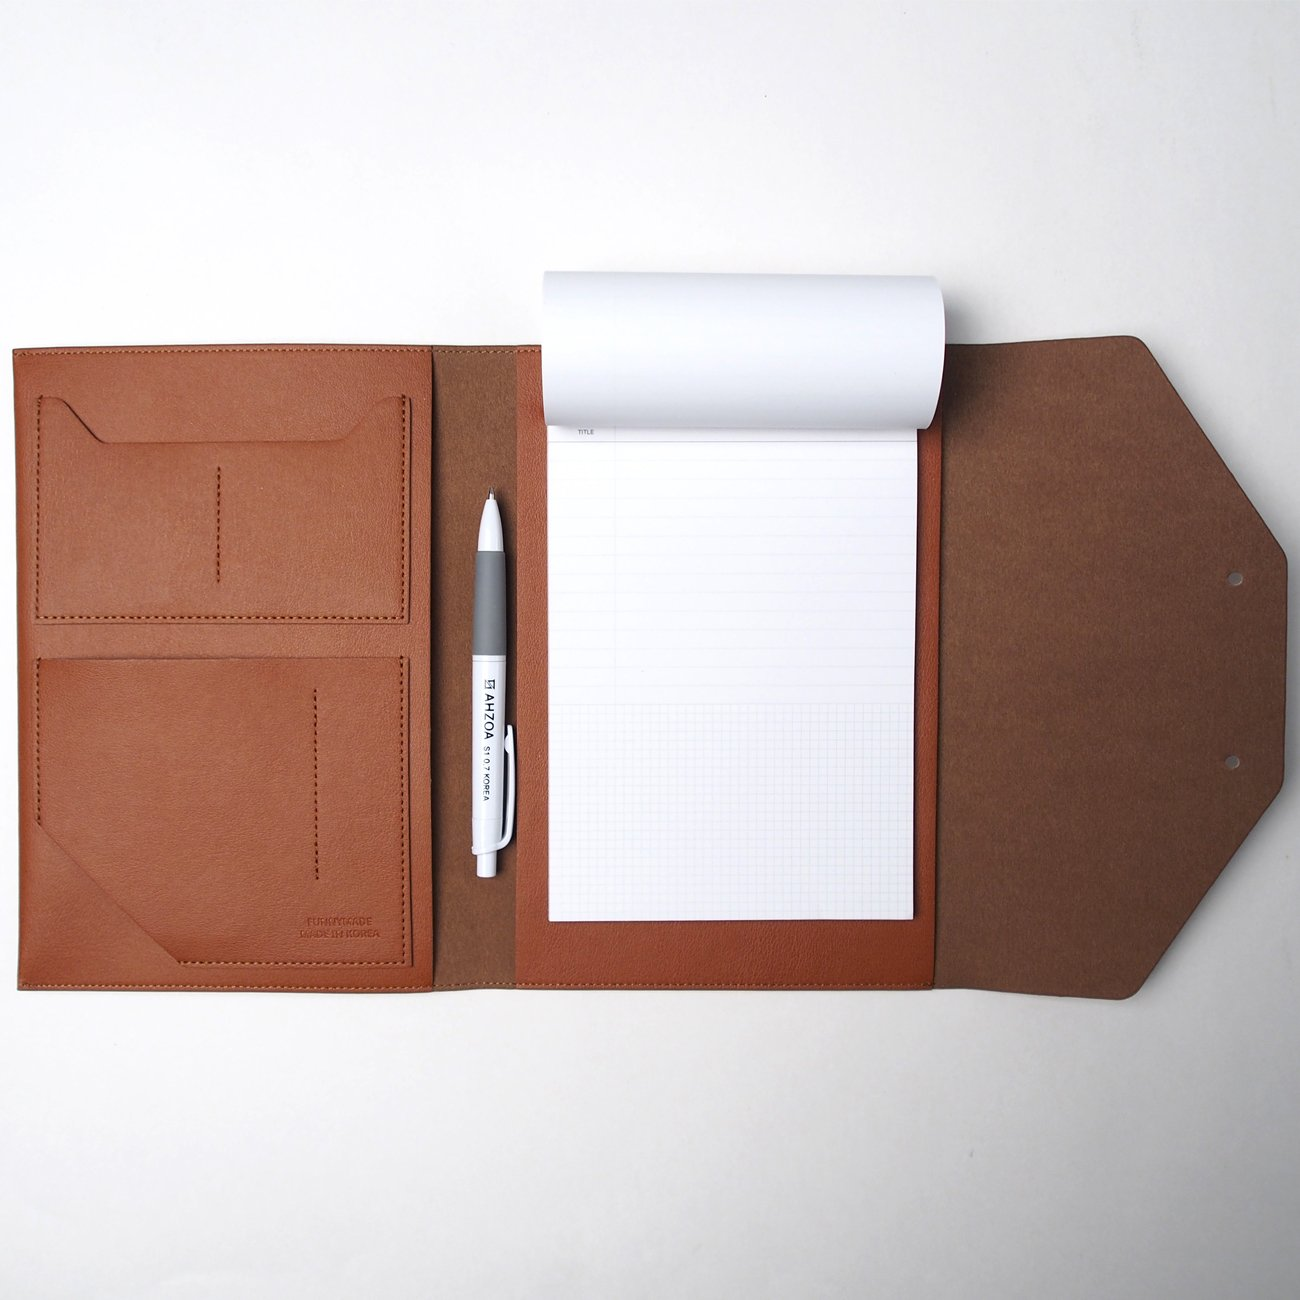 Flap Top Multi A5 Padfolio with AHZOA Pencil, Included 5 X 8 inch Legal Writing Pad, Synthetic Leather 7.1 x 9.06 inch Handmade Handy Organizer Pouch (Brown)